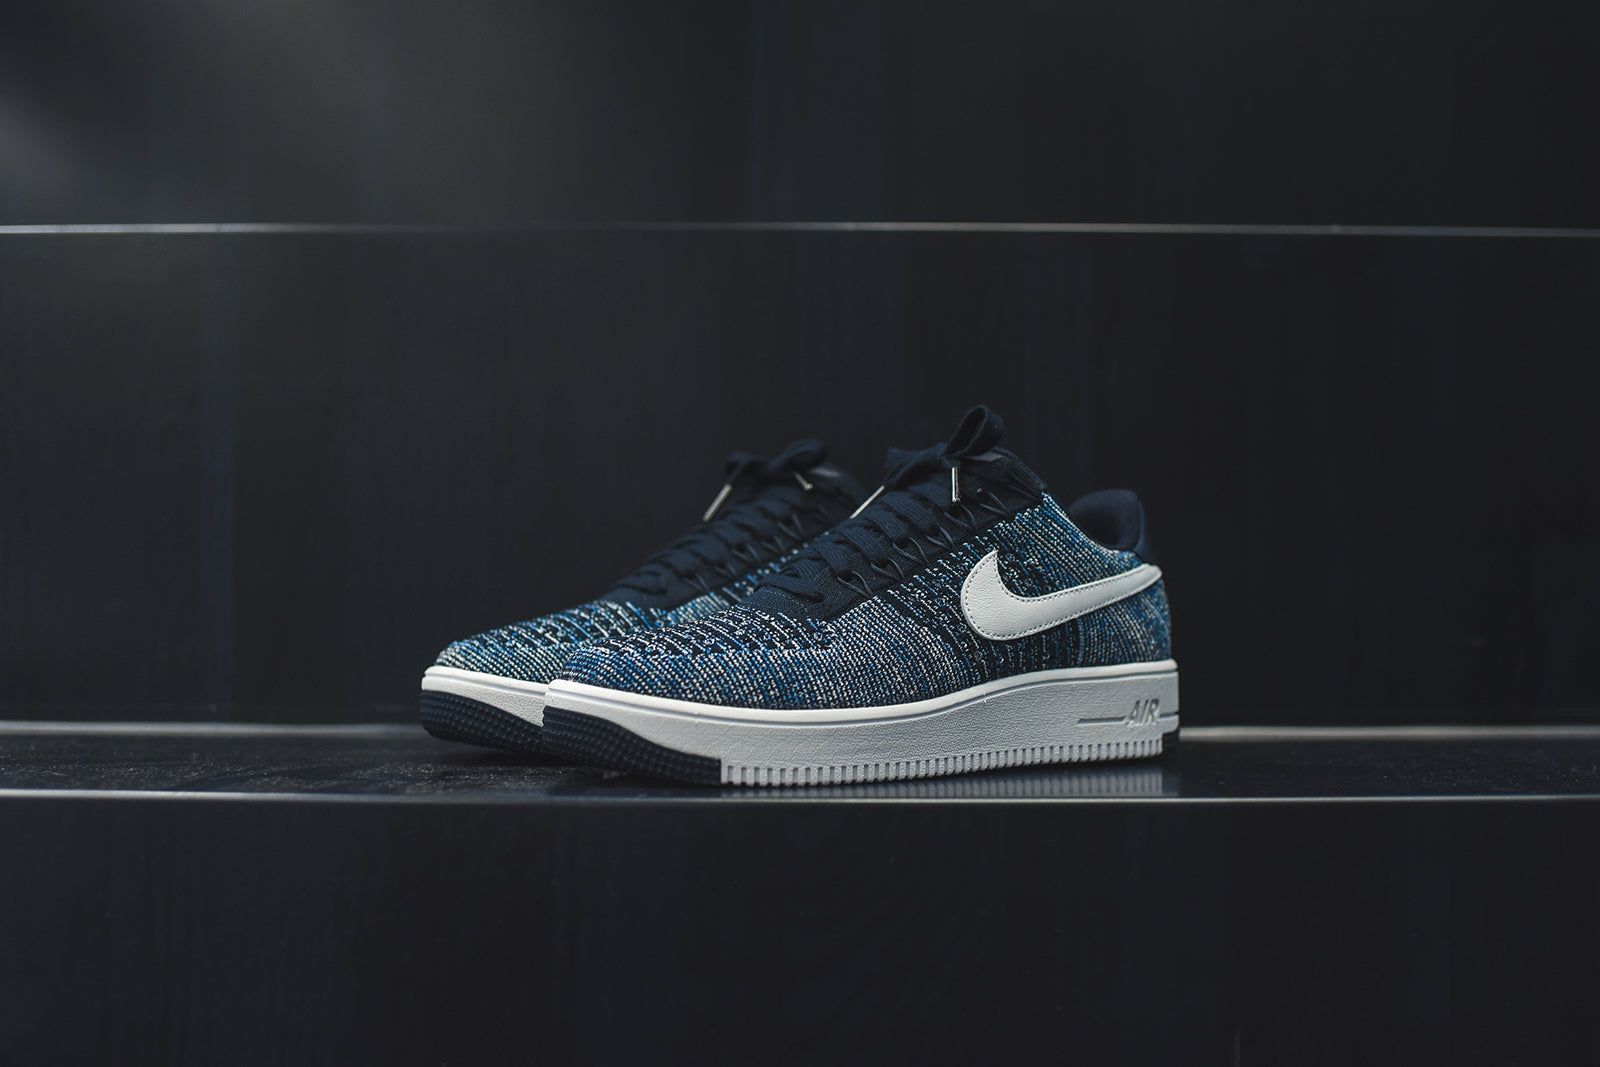 Nike Air Force 1 Ultra Flyknit Low Obsidian – Kith